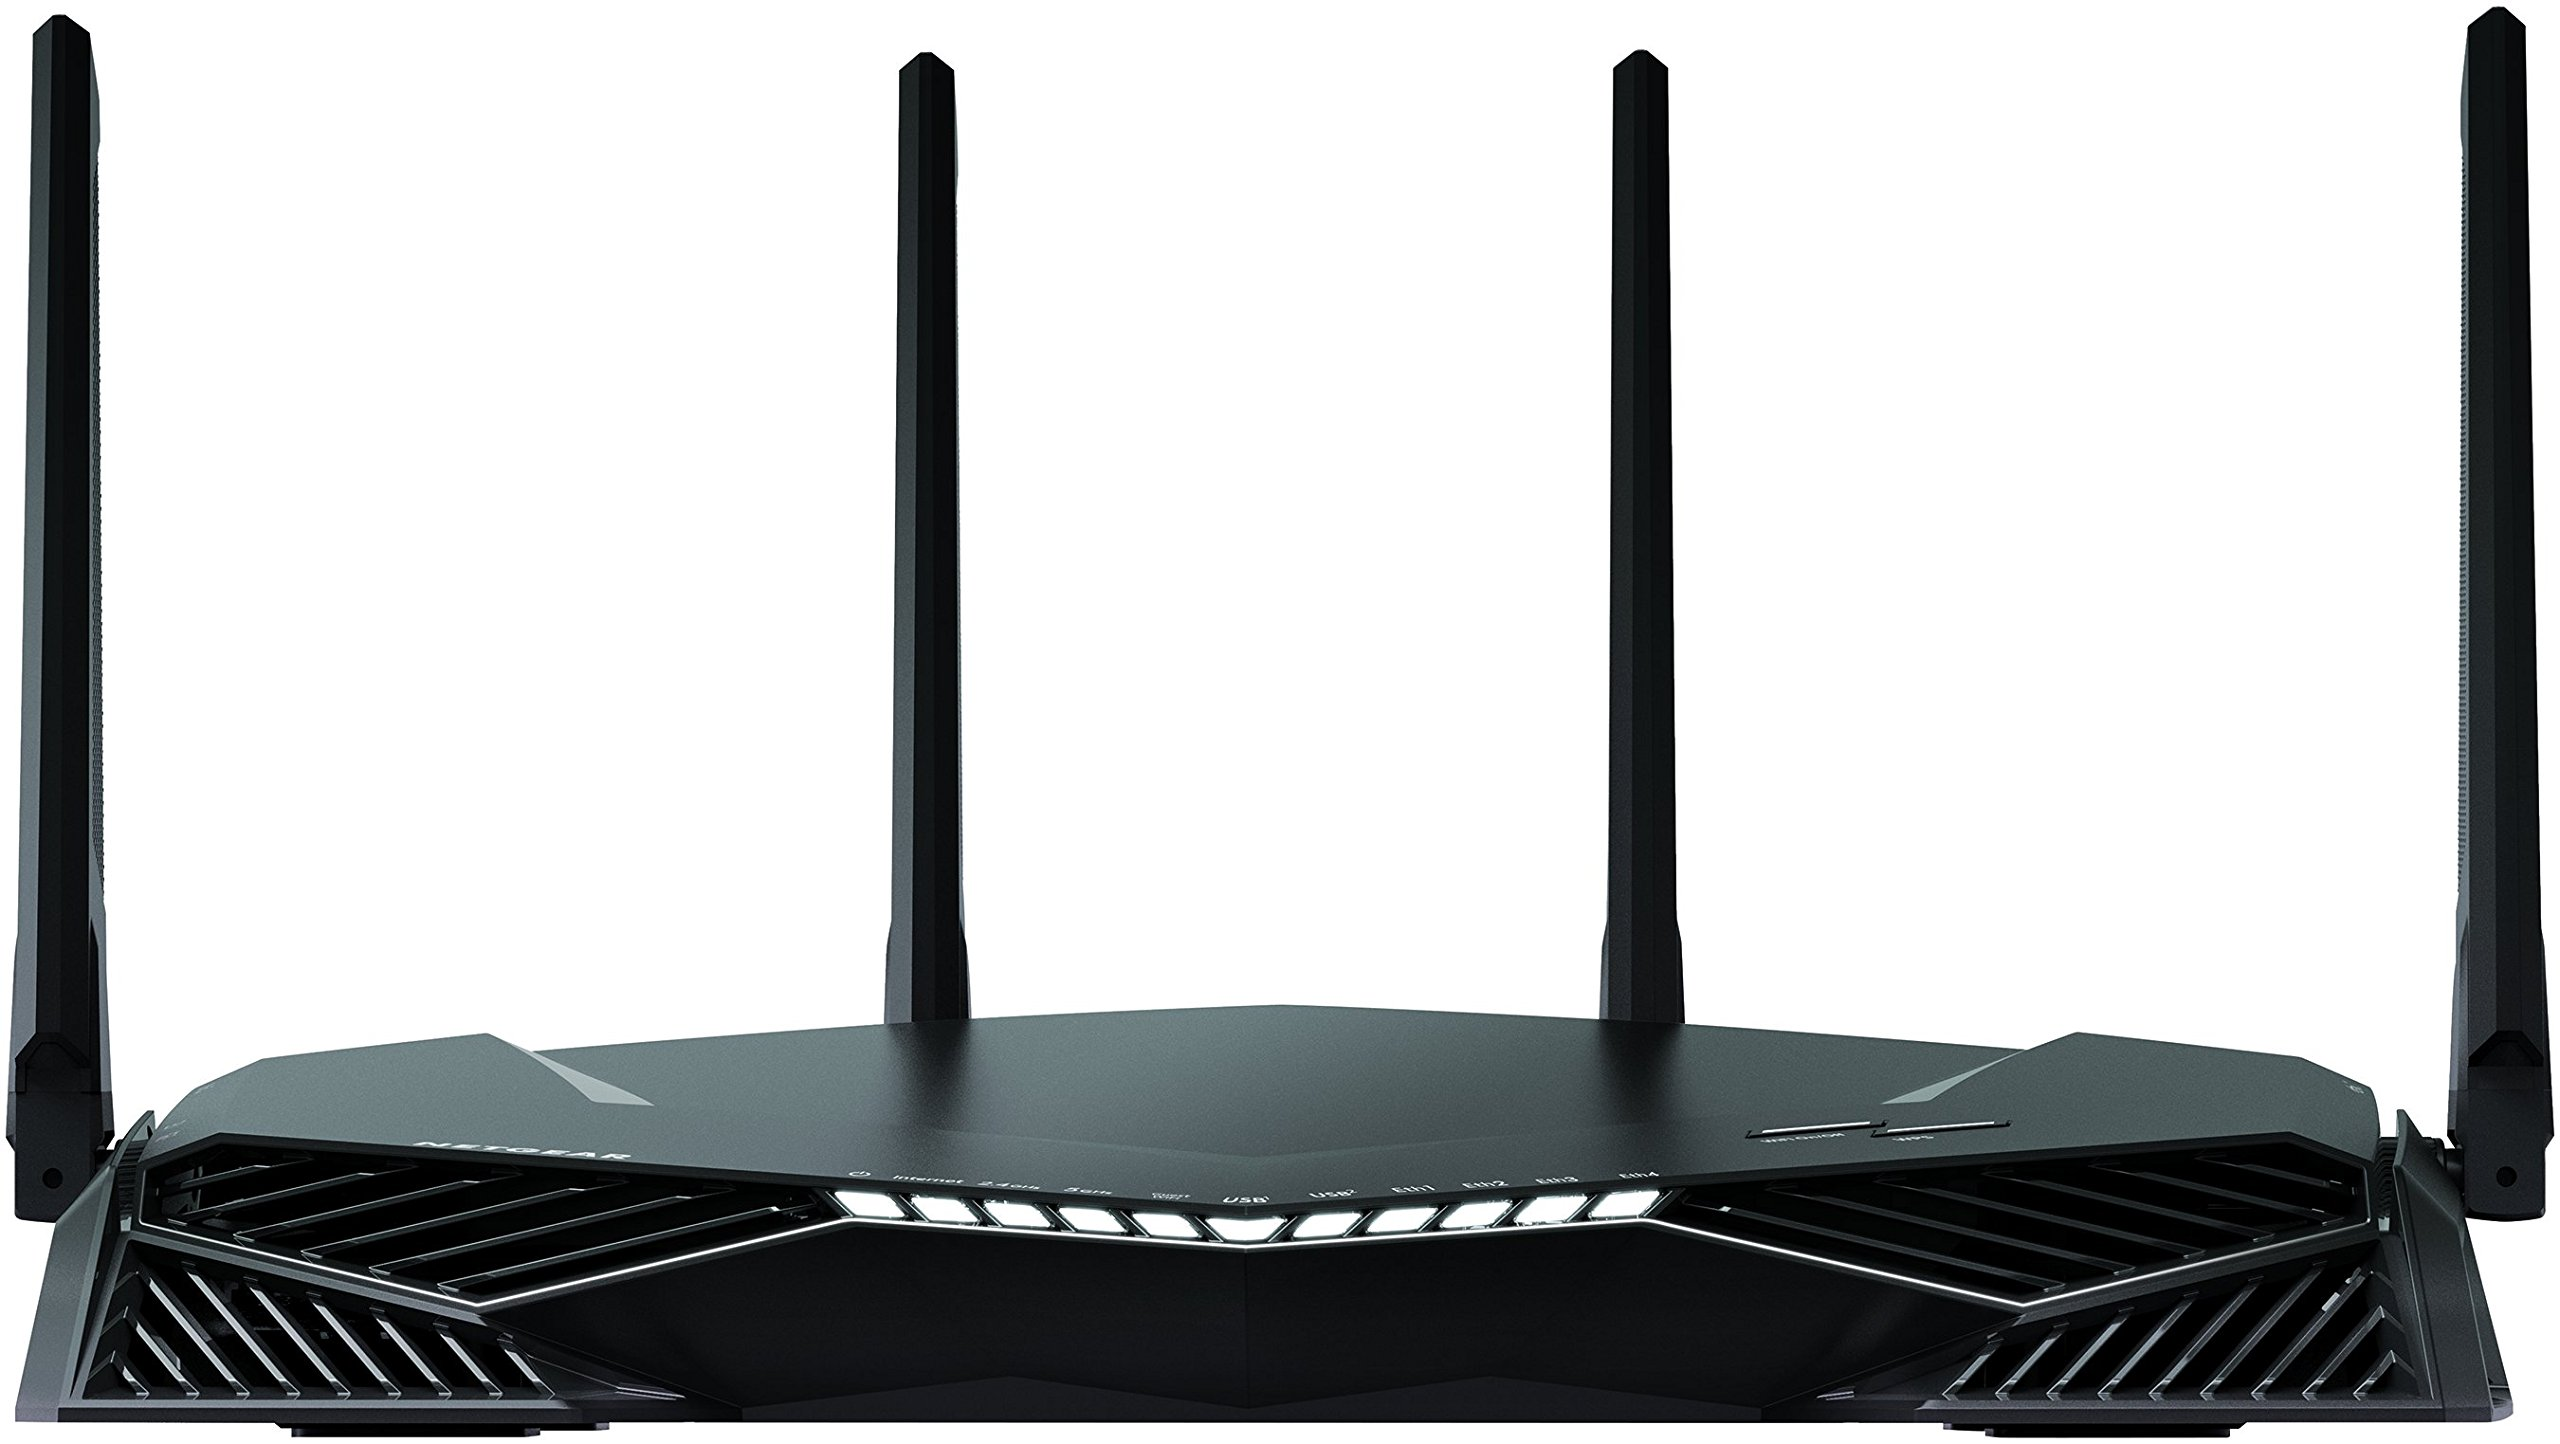 NETGEAR XR500 Nighthawk Pro Gaming WiFi Router- AC2600 Dual band wireless Gigabit Ethernet speeds - Control your ping and latency- Works with Xbox, PlayStation, PC and more. 6 Minimize ping and maximize performance with four 1-Gigabit Ethernet ports for lag-free, wired connectivity and 1.7 GHz dual-core processor network efficiency Amp up your WiFi with AC2600 dual-band router that delivers blazing fast speeds up to 2.6 Gbps Put your gaming traffic in a designated express lane with advanced Quality of Service, bypassing network congestion and reducing lag spikes,  jumps and jitters